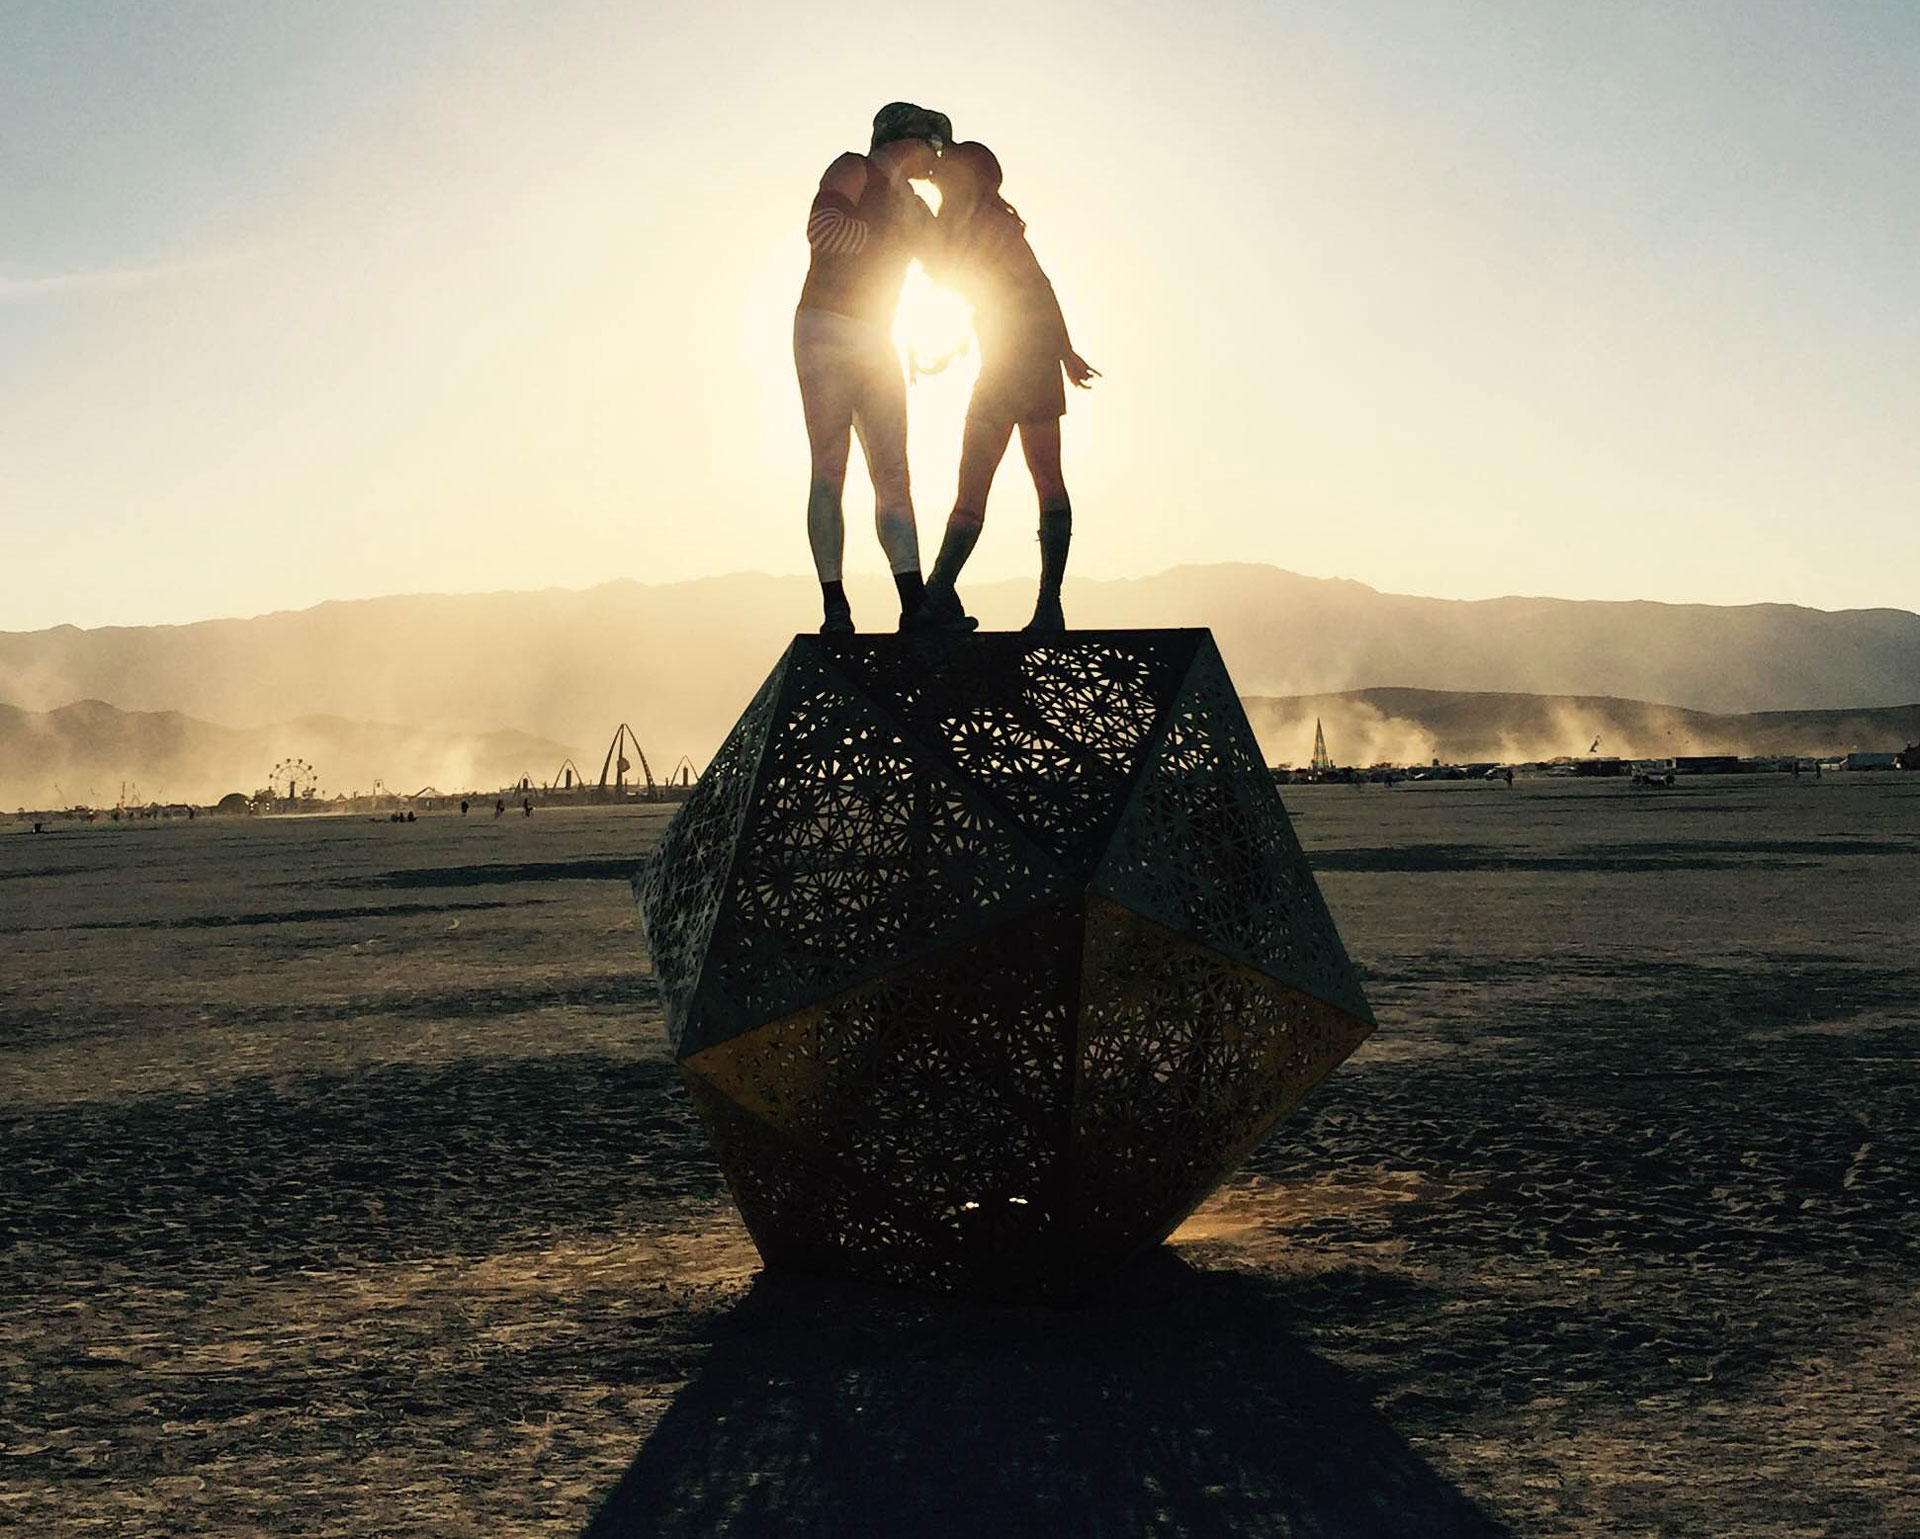 April Dembosky and her husband at Burning Man, 2015.